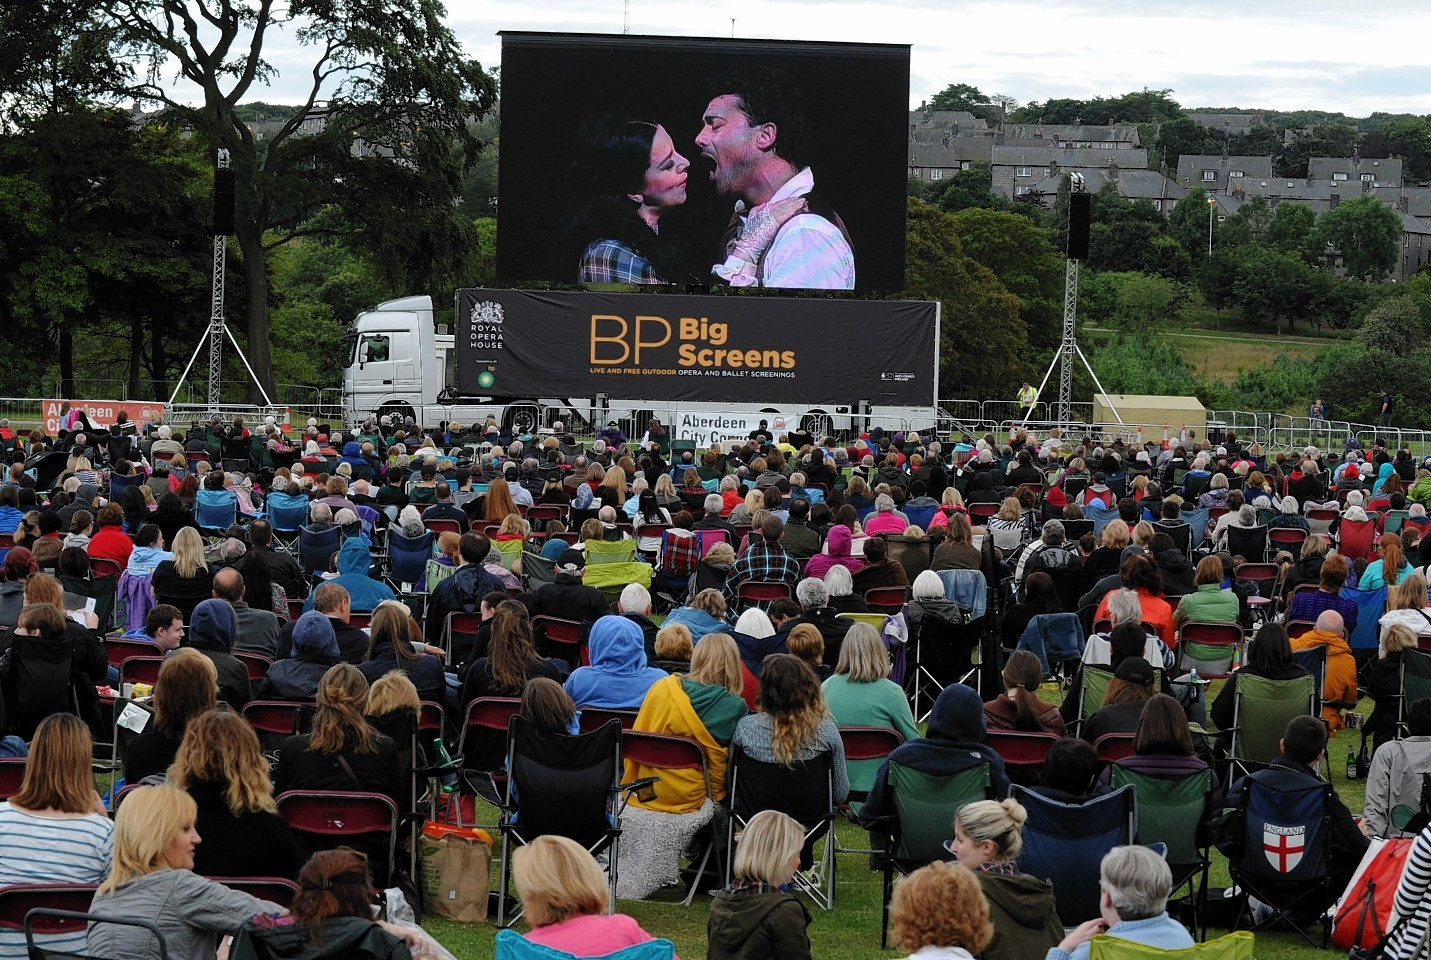 The screening will take place at Duthie Park tonight